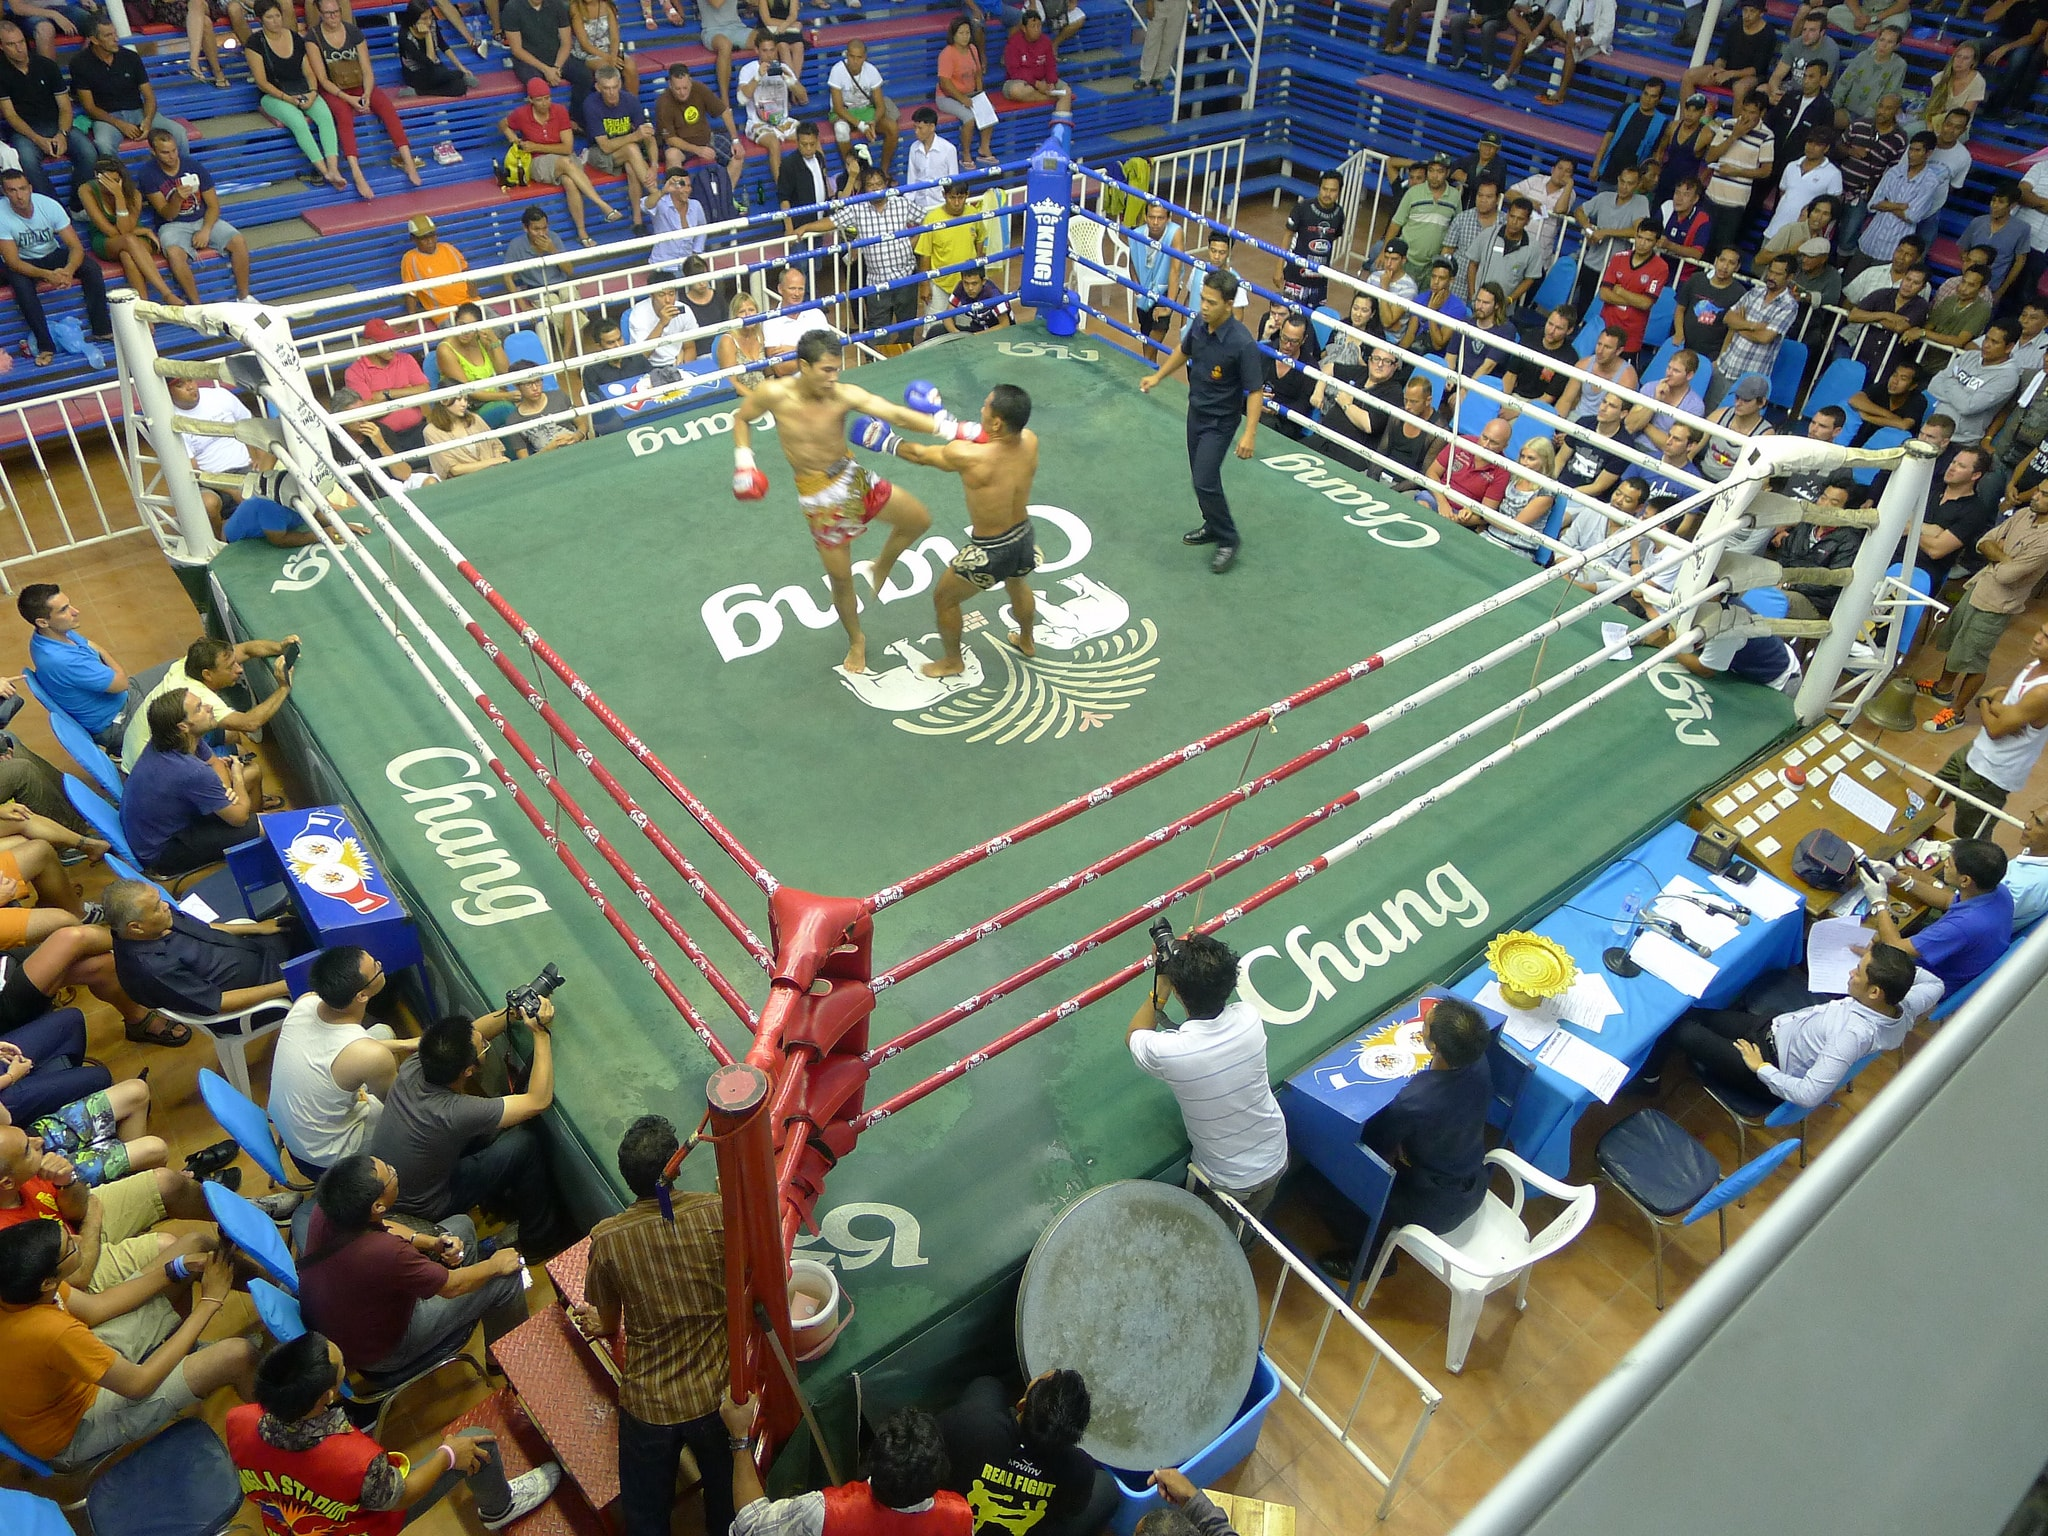 Thai boxing ring